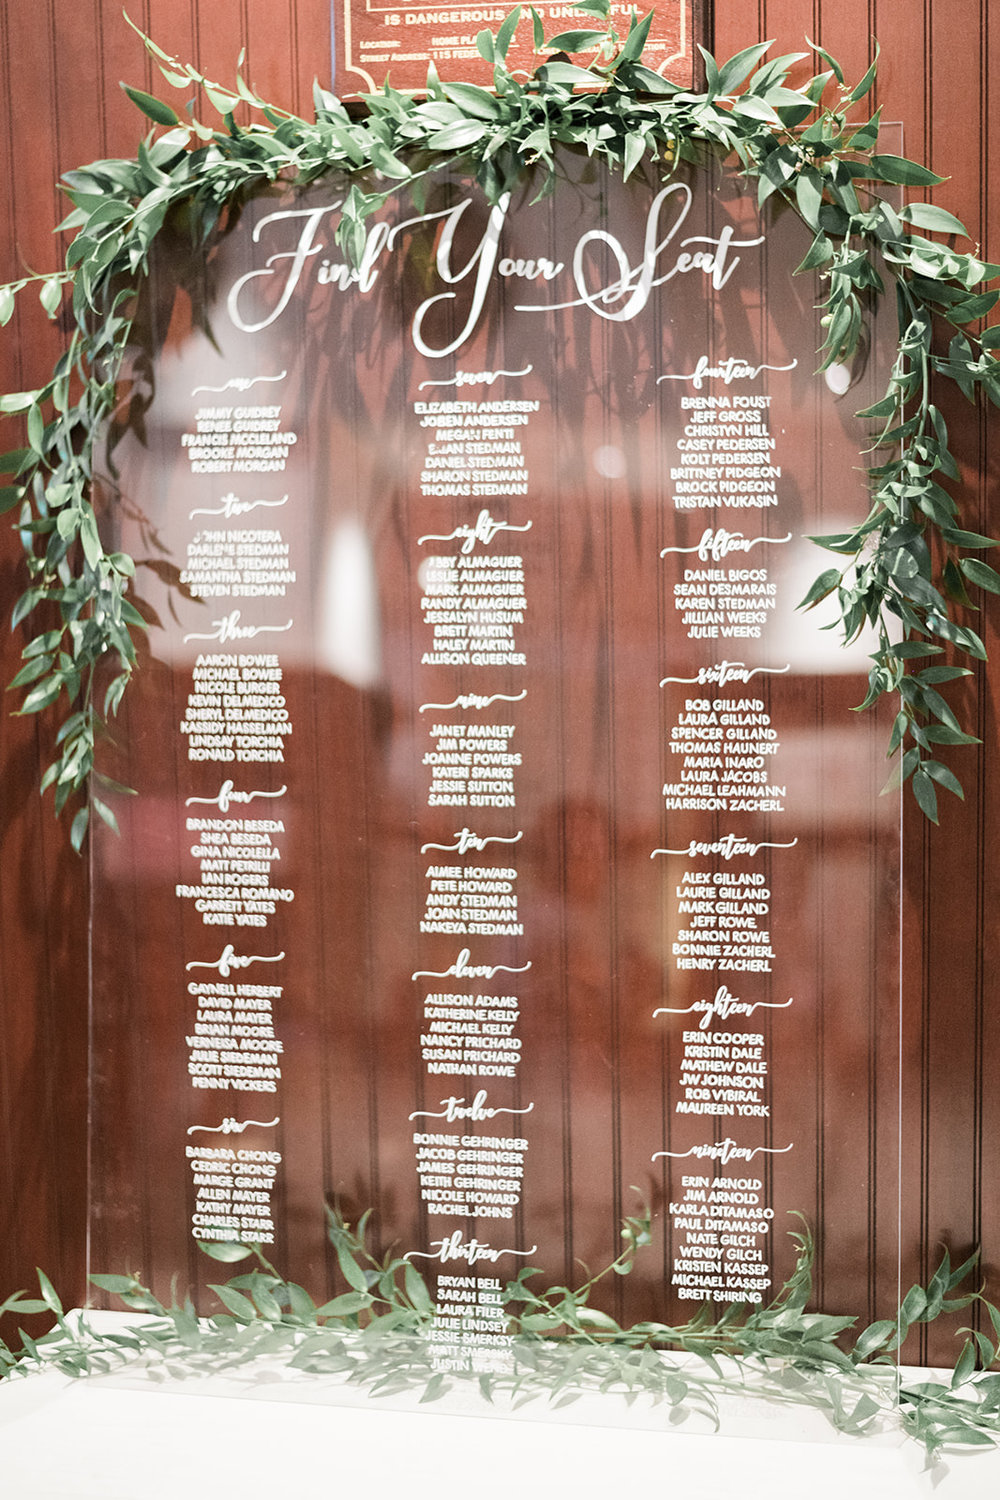 Table seating arrangements displayed on acrylic wedding sign at wedding reception for Pittsburgh wedding at PNC Park planned by Exhale Events. Find more wedding inspiration at exhale-events.com!